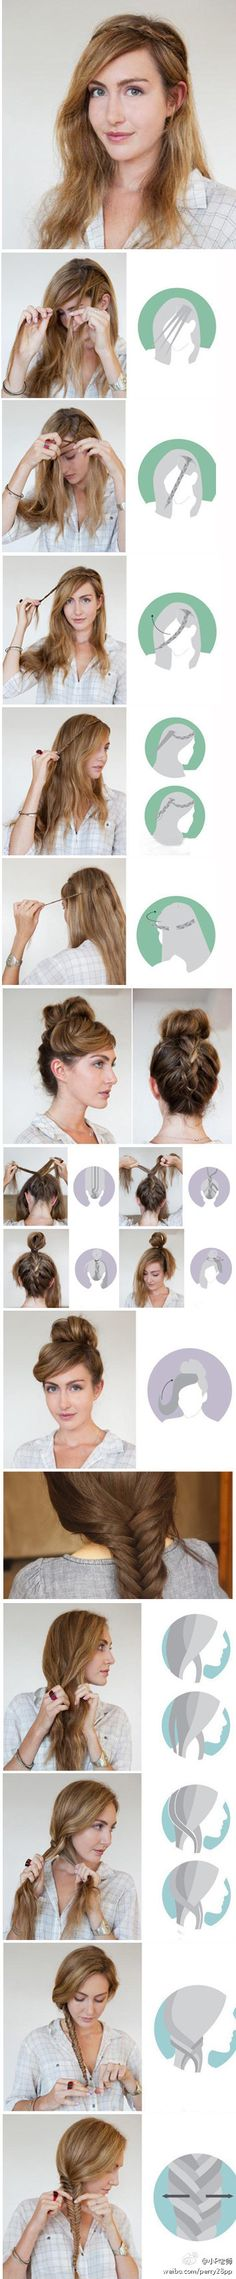 DIY Braided Hair Hairstyles